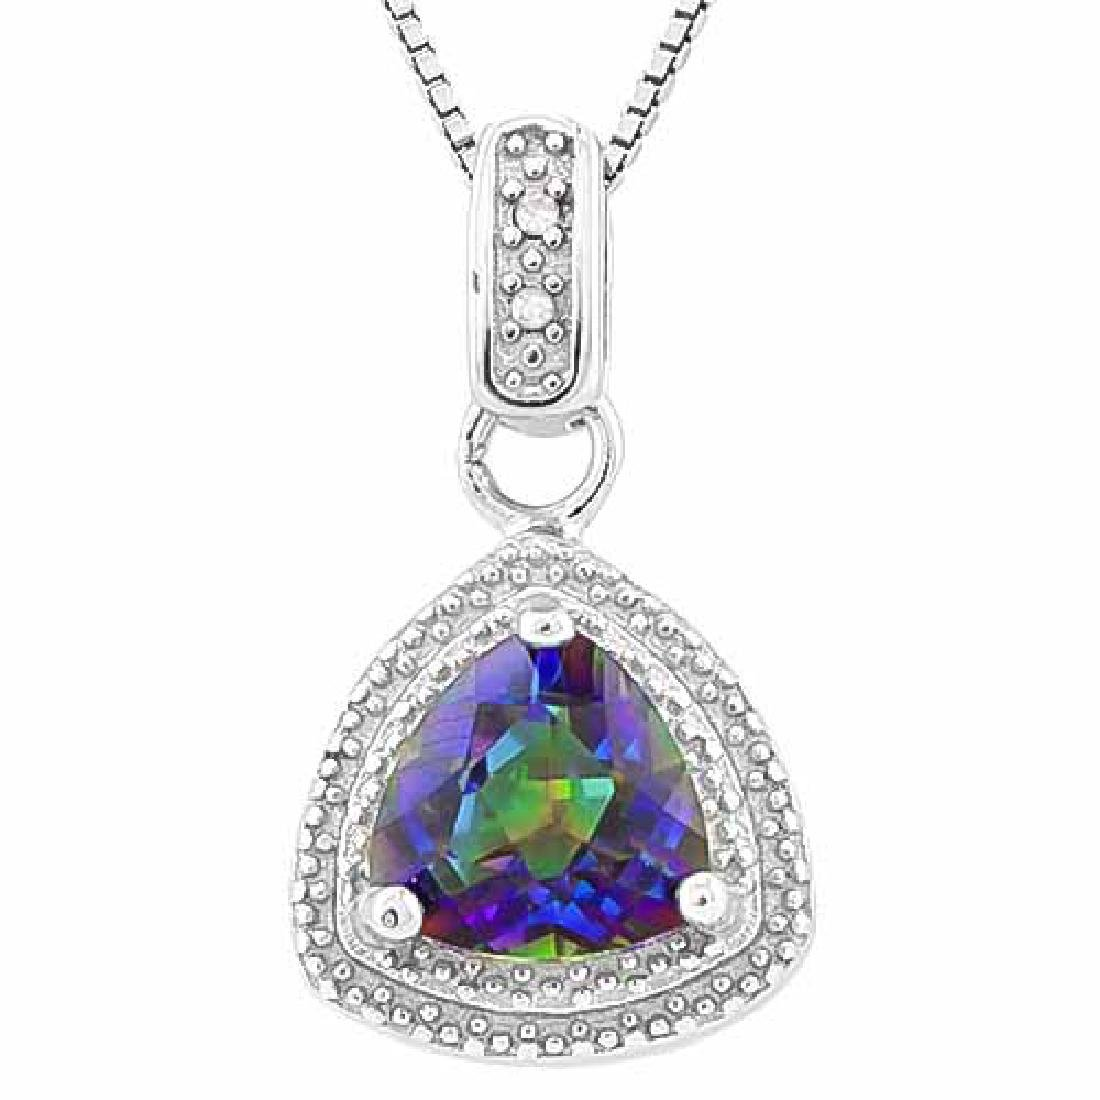 1 1/5 CARAT OCEAN MYSTIC GEMSTONE & DIAMOND 925 STERLIN